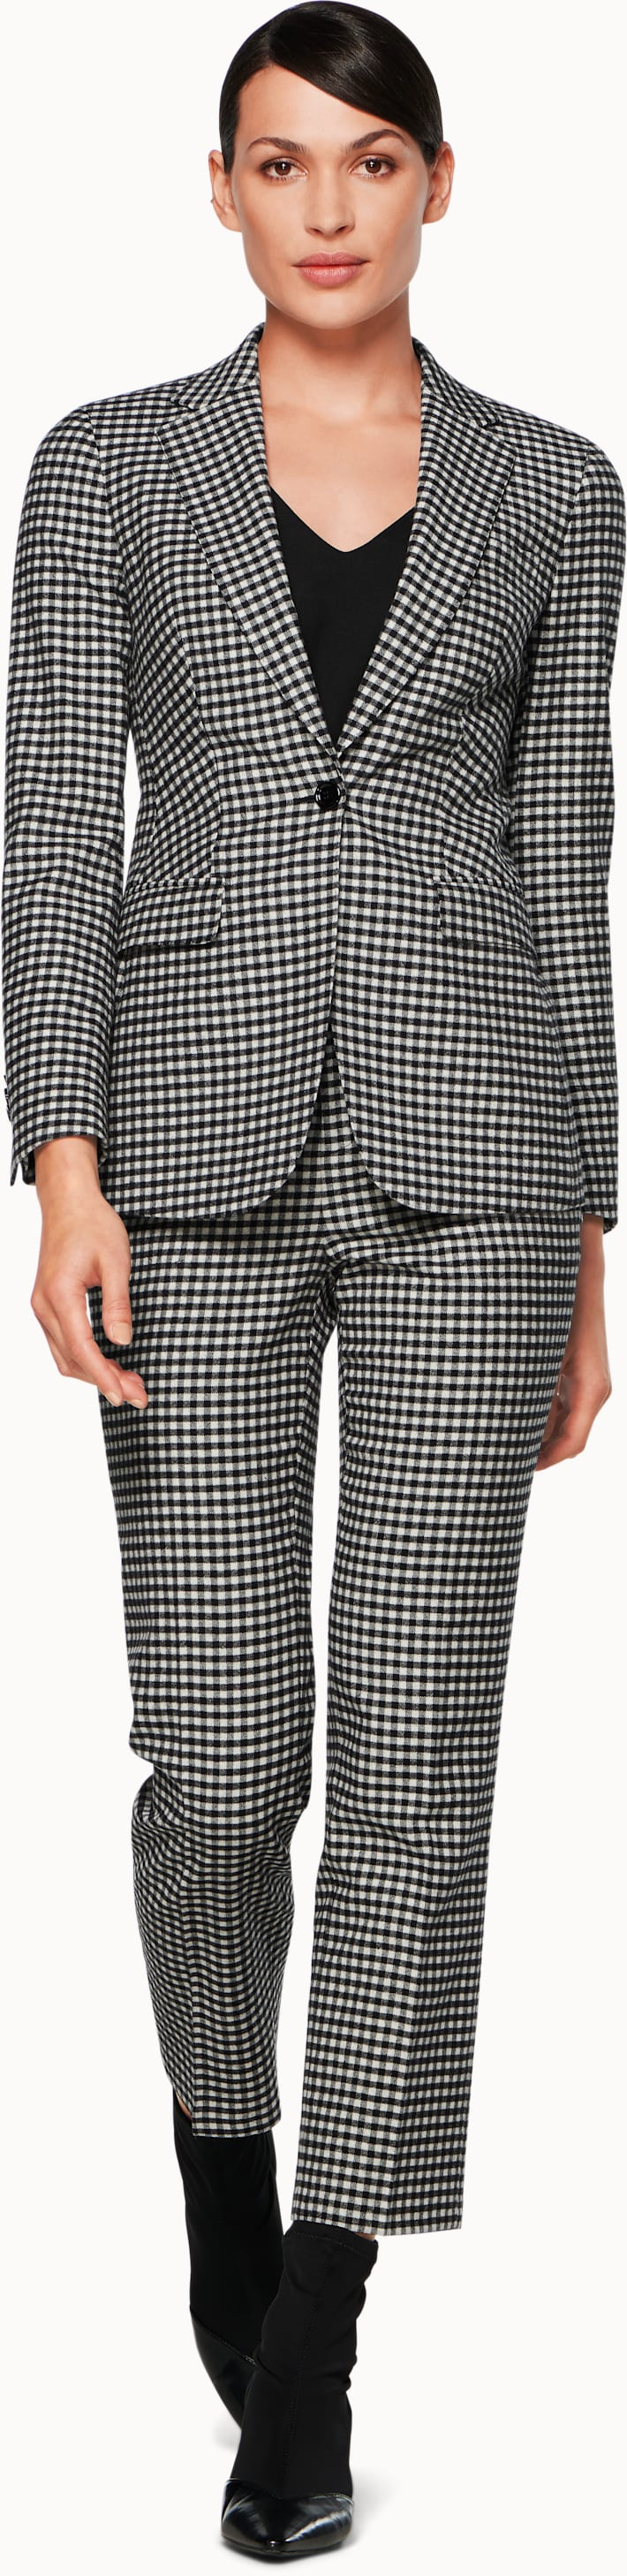 Cameron Black & White Checked Jacket